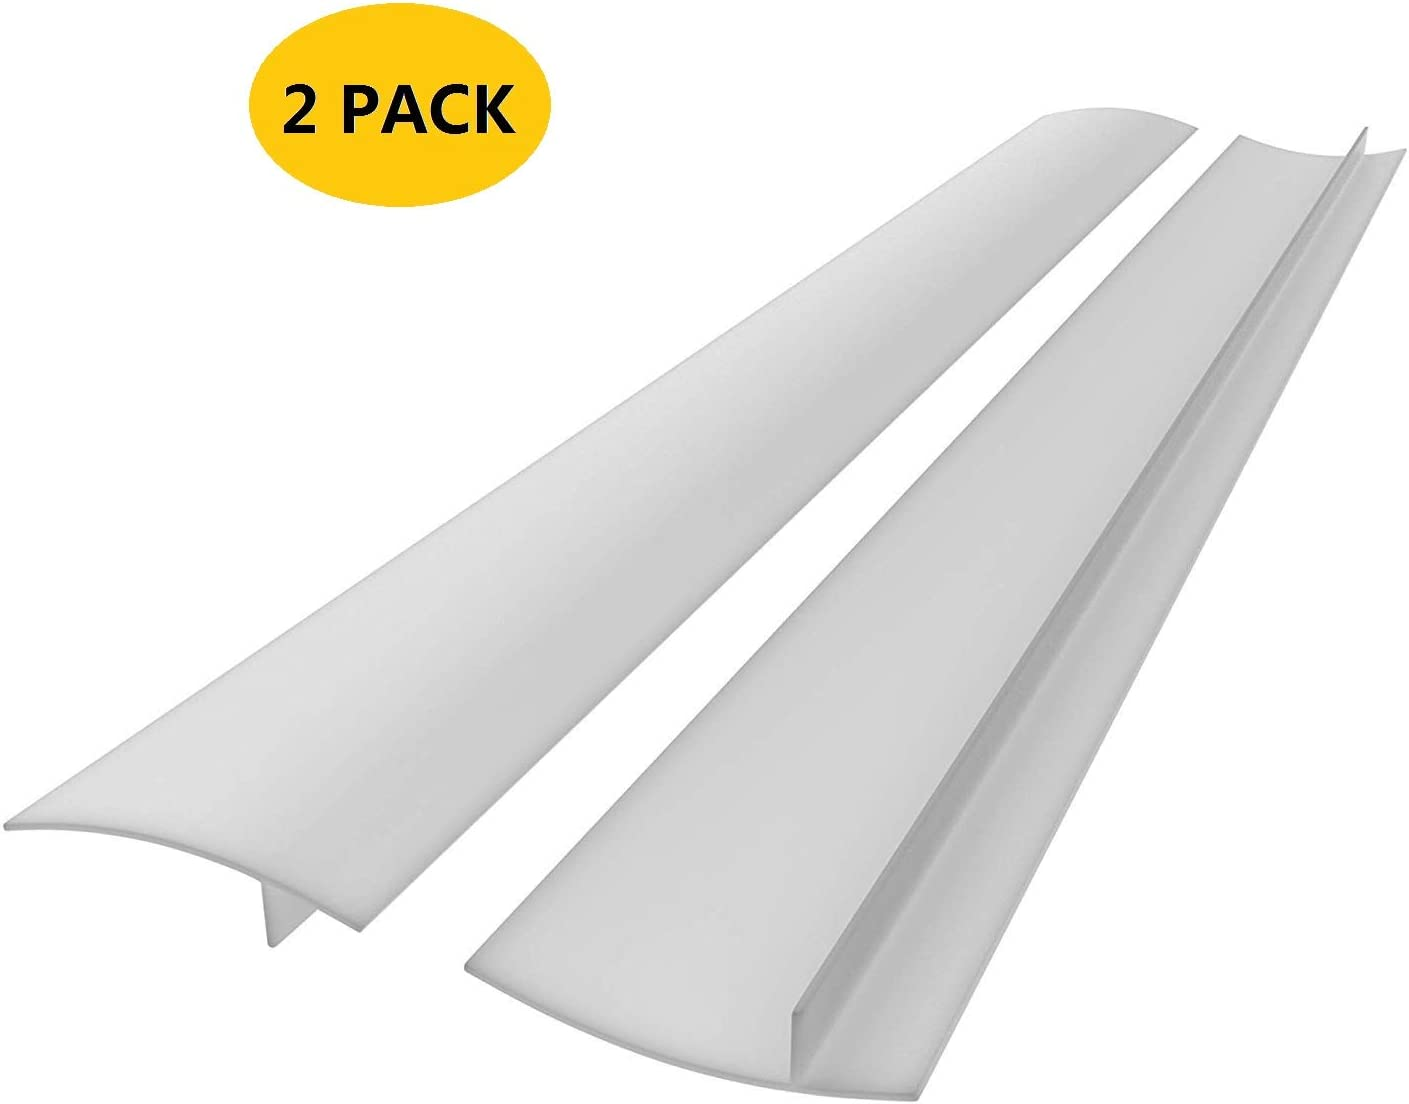 21 inches Silicone Stove Counter Gap Cover (Set of 2) Seals Out Spills Between Counters, Appliances, Dryers, Stoves, Washing Machines White